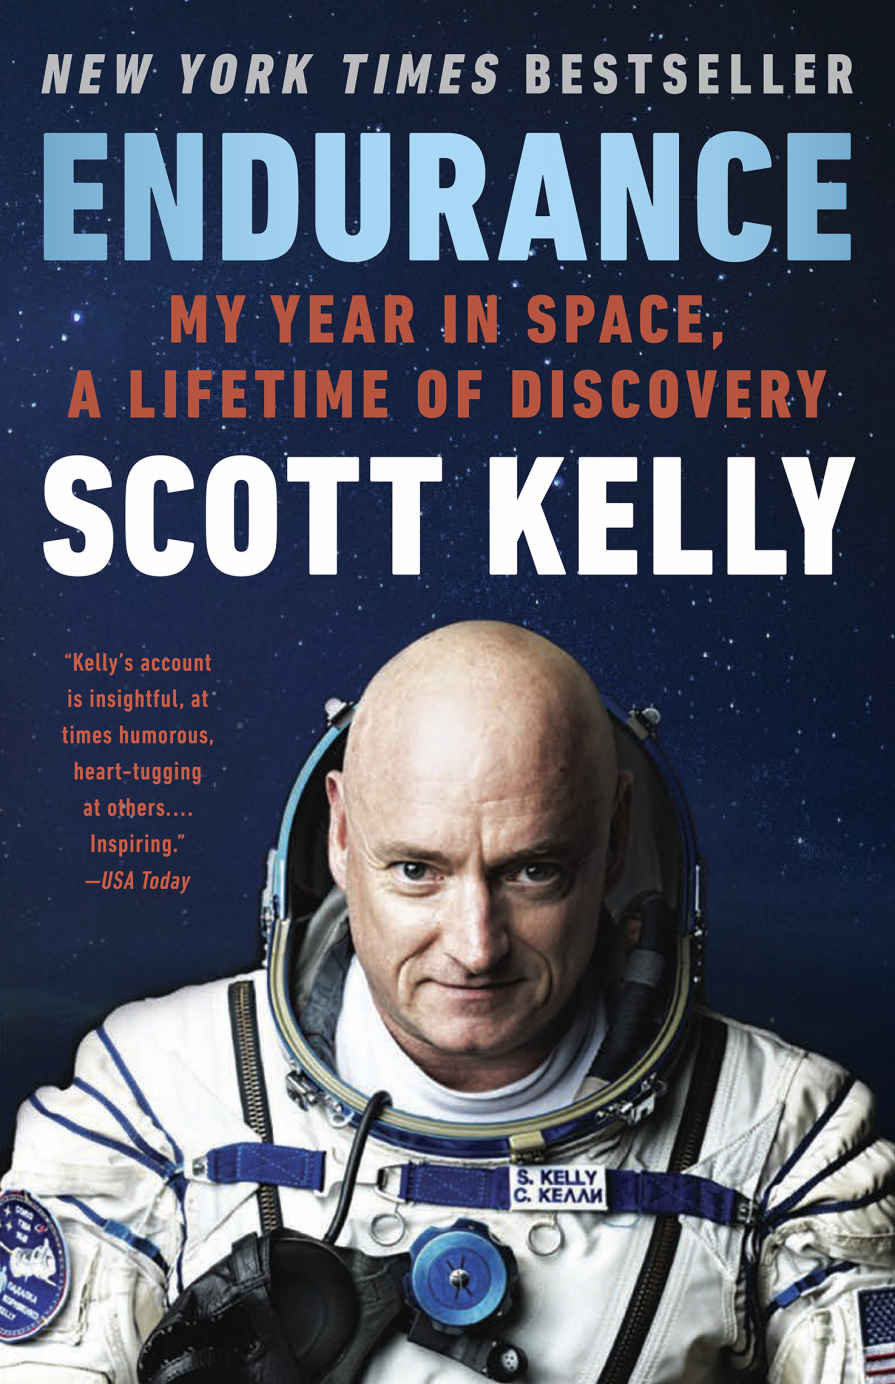 Scott Kelly's year in space on the ISS.